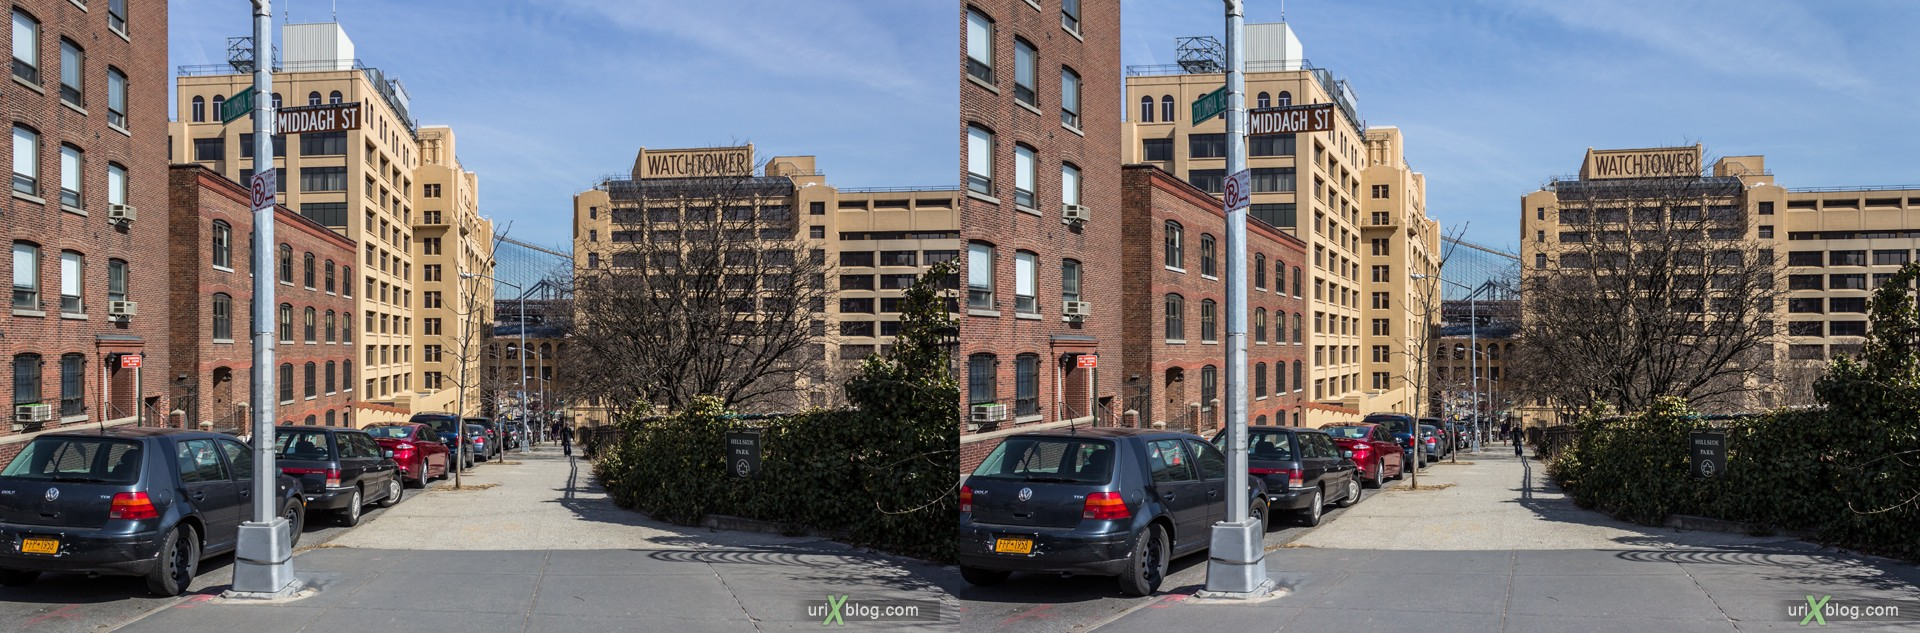 2013, Columbia Heights street, Brooklyn, NYC, New York City, USA, 3D, stereo pair, cross-eyed, crossview, cross view stereo pair, stereoscopic